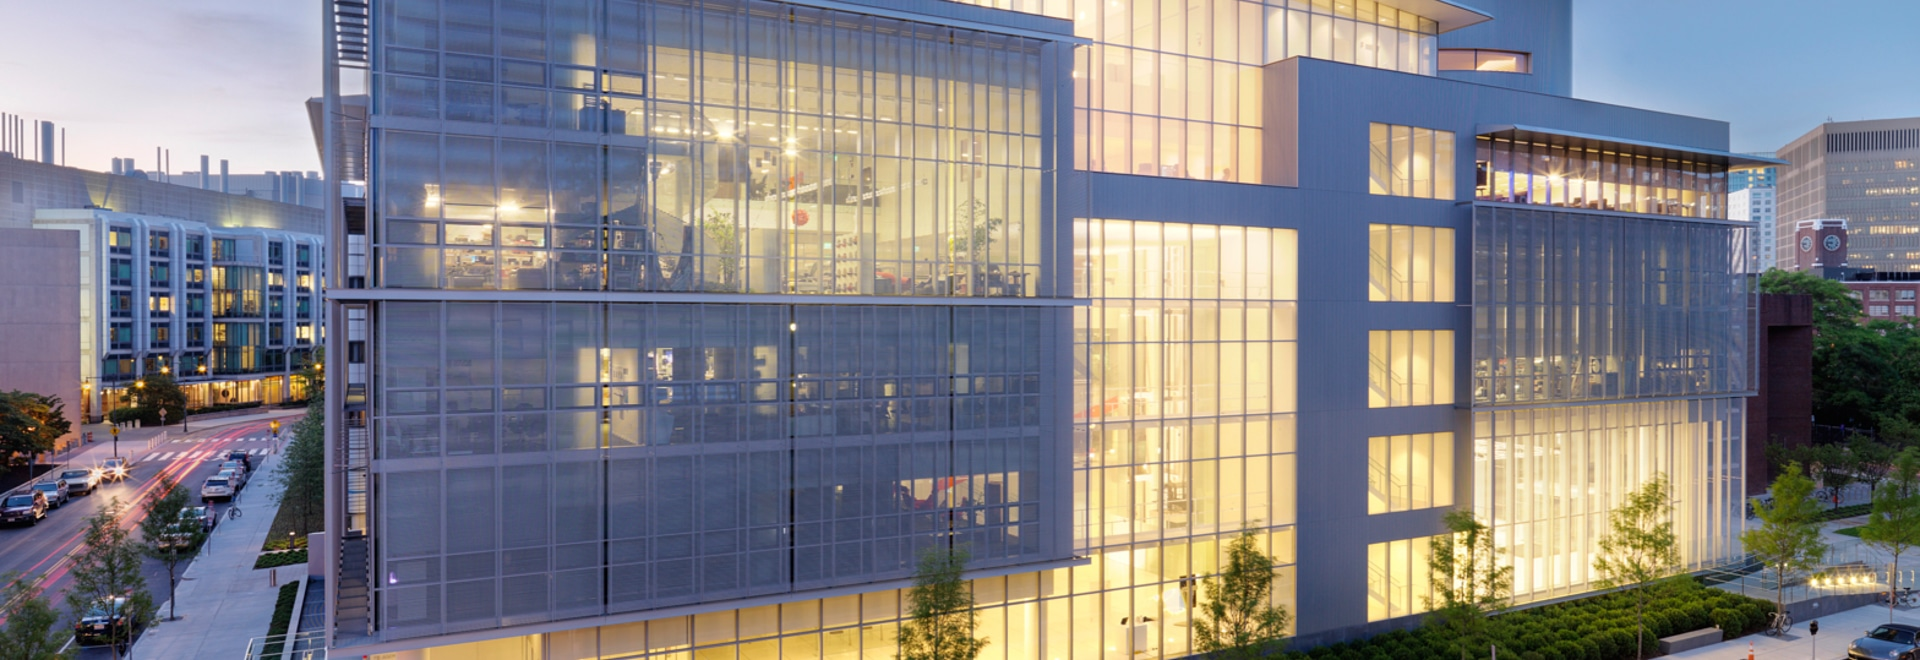 Worlds Best Architect rca and mit named as world's top design and architecture schools